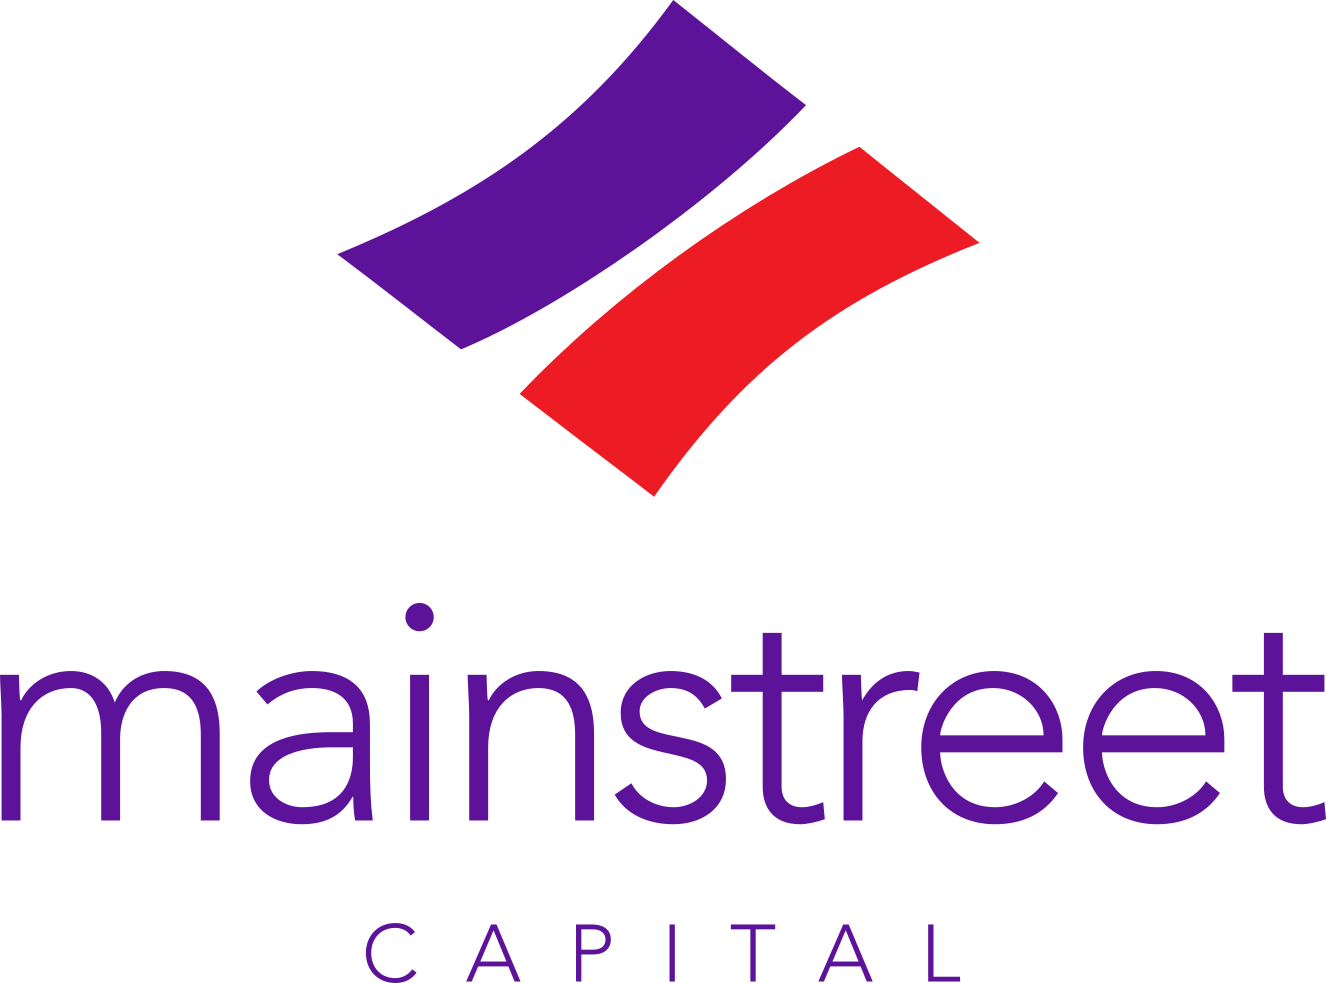 Mainstreet Capital relaunches its brand, promises new corporate philosophy